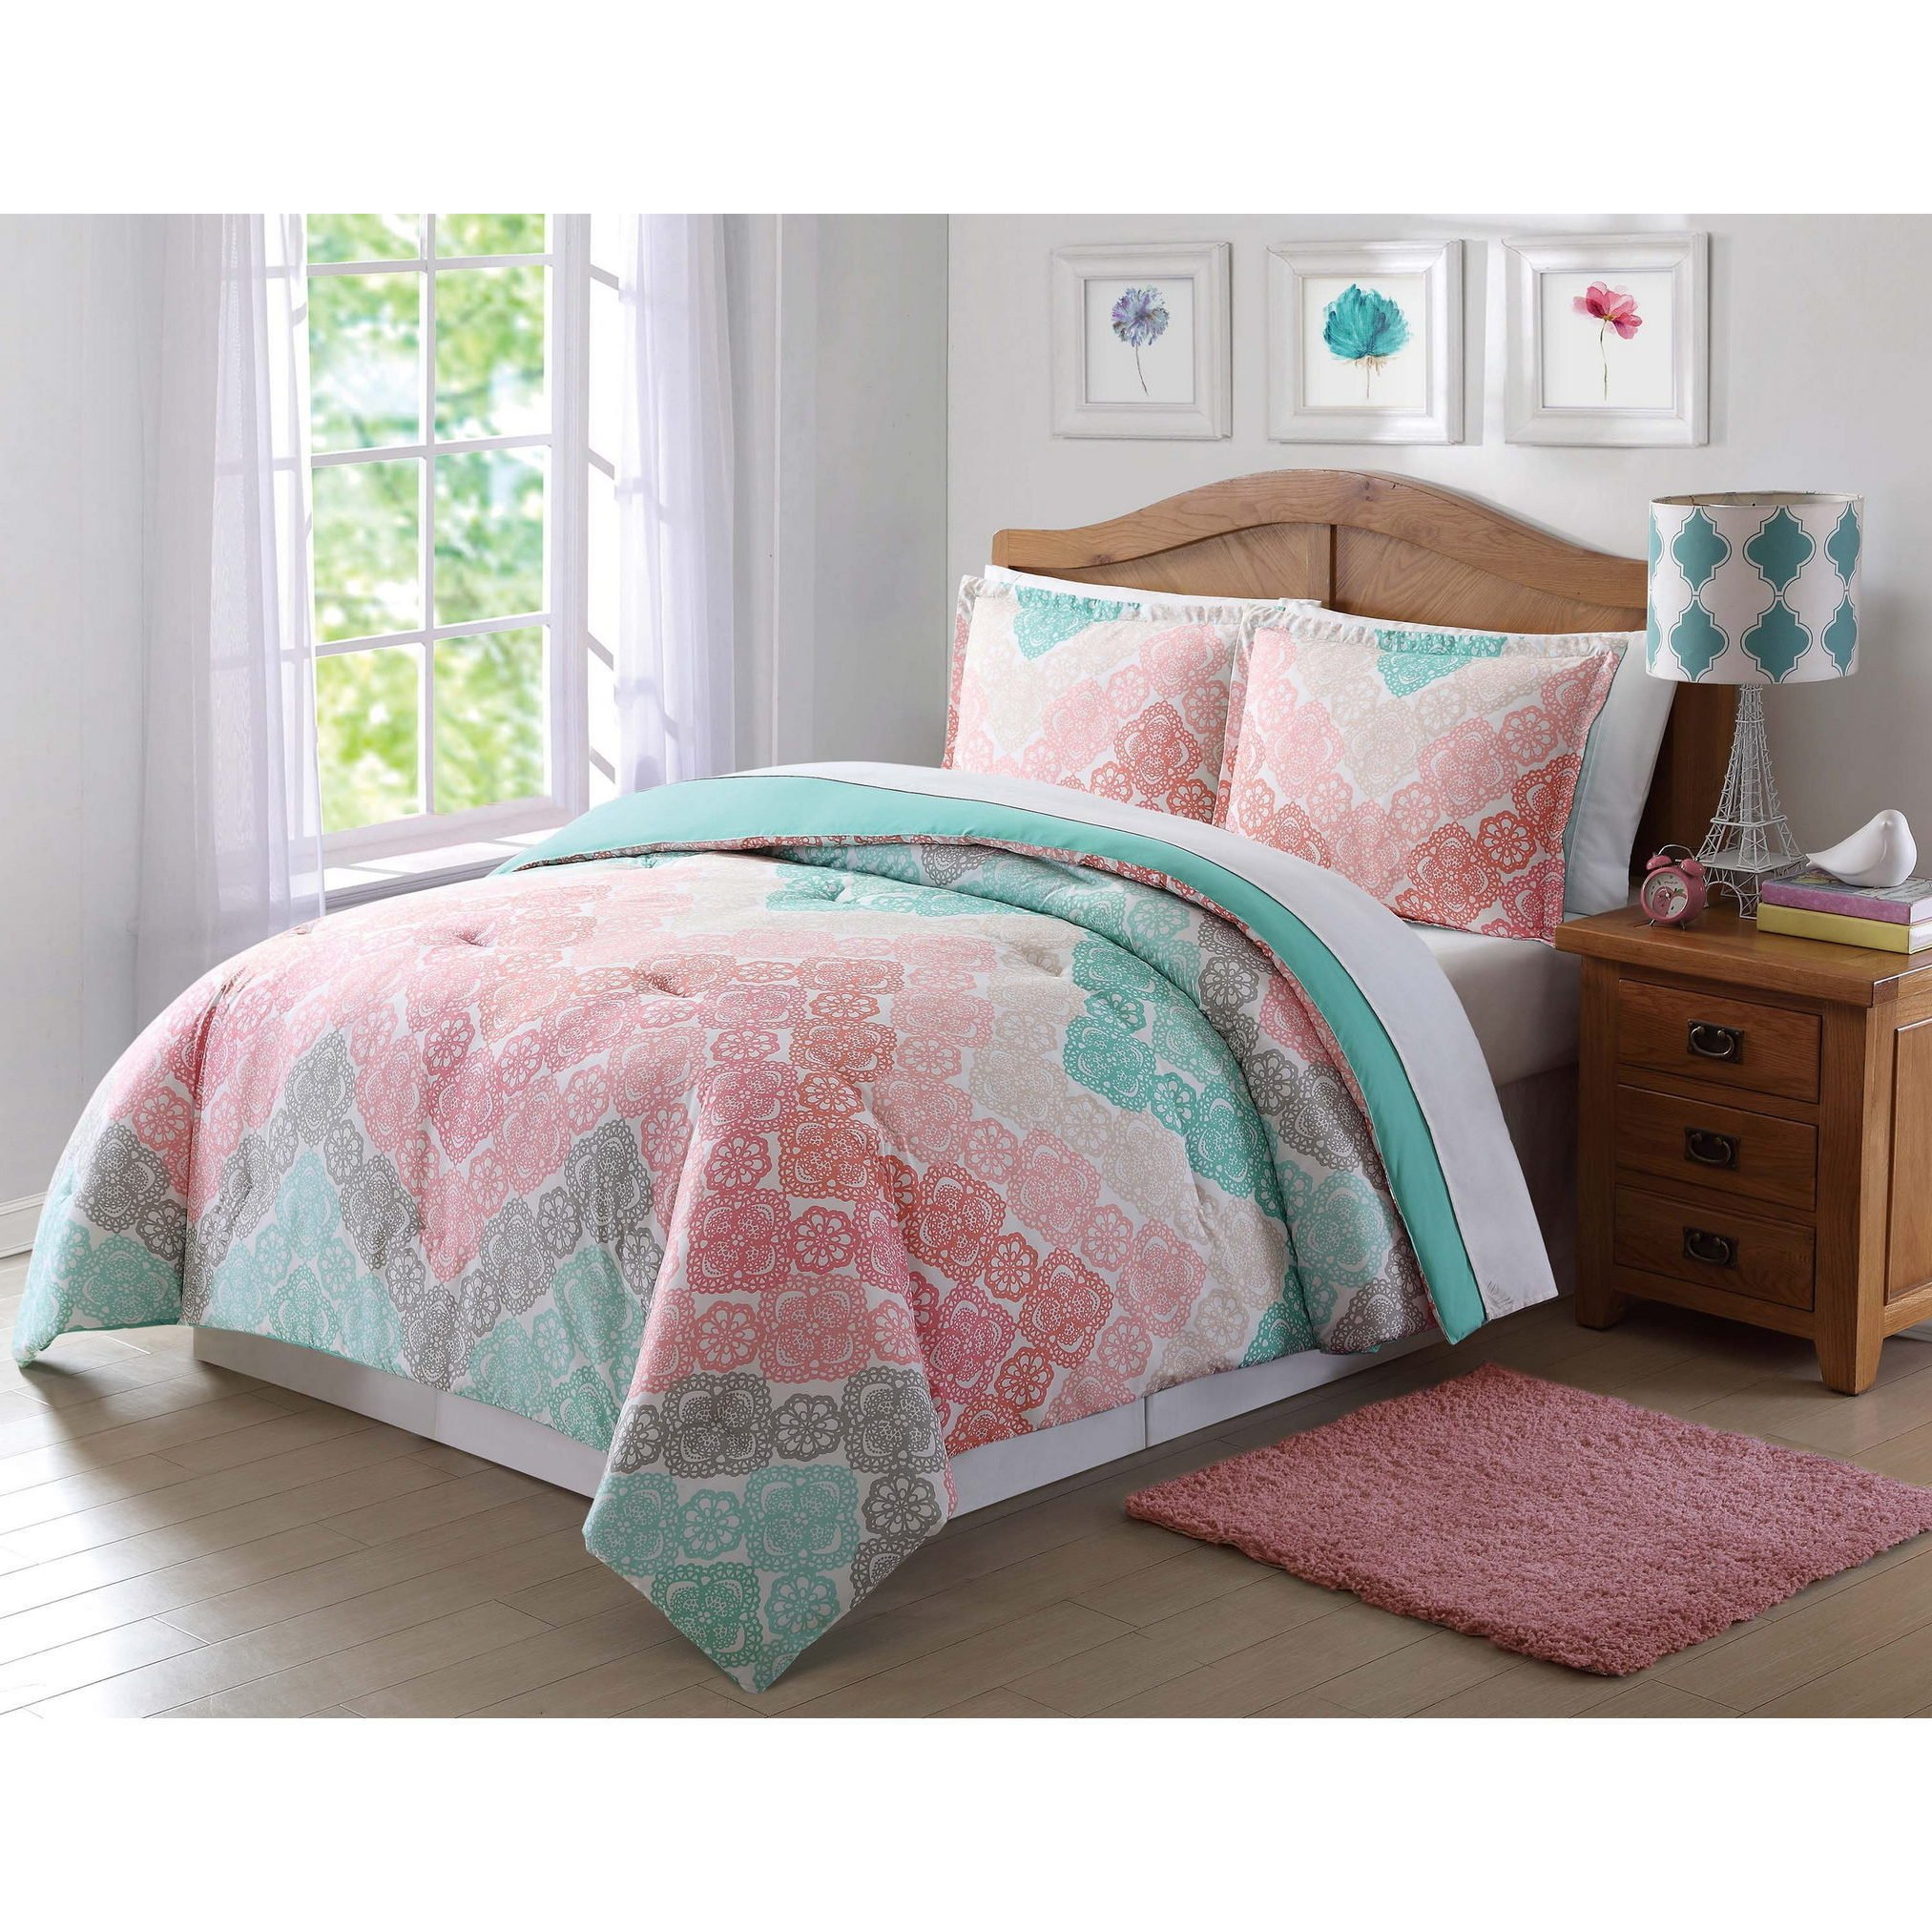 3 Piece Girls Chevron Comforter Full Queen Set, Pretty All Over Medallion Flower Mandala Motif Bedding, Beautiful Multi Floral Lace Horizontal Zigzag Themed, Turquoise Teal Green Coral Light Pink